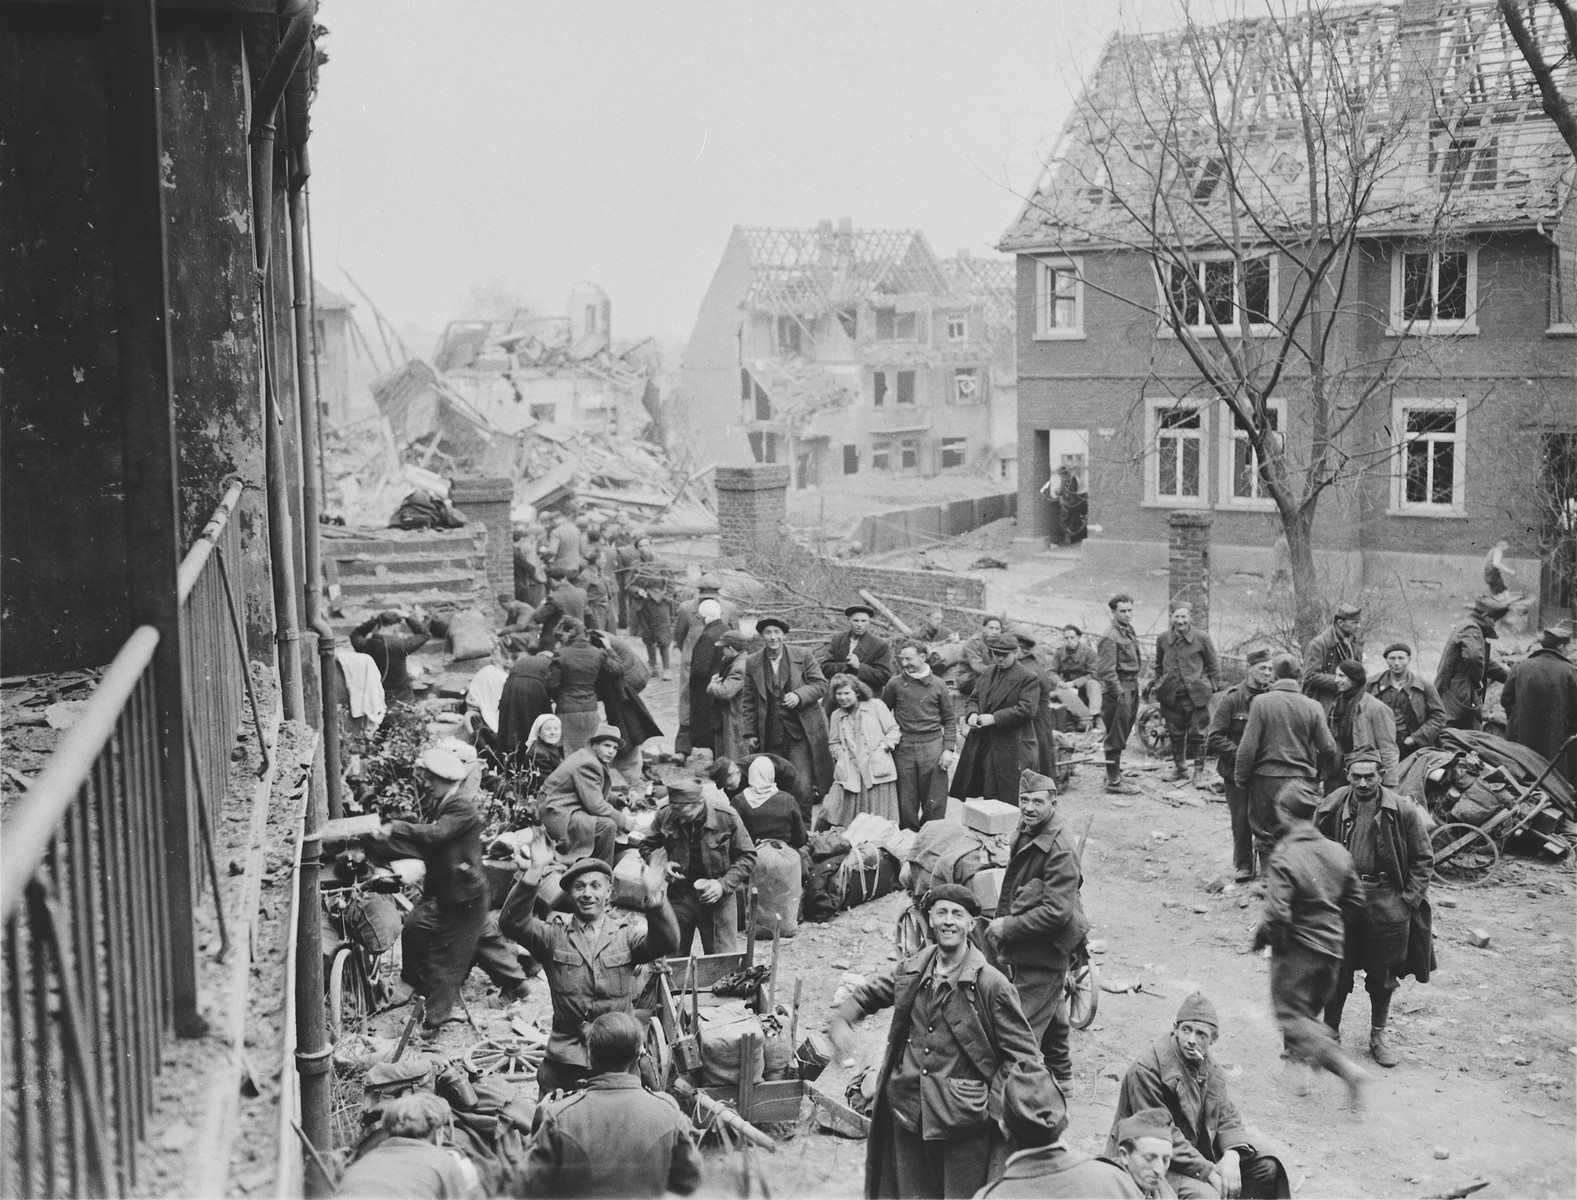 Slave laborers in the town of Altenkirchen, who were liberated by the U.S. First Army, collect their belongings and await evacuation to a nearby area.